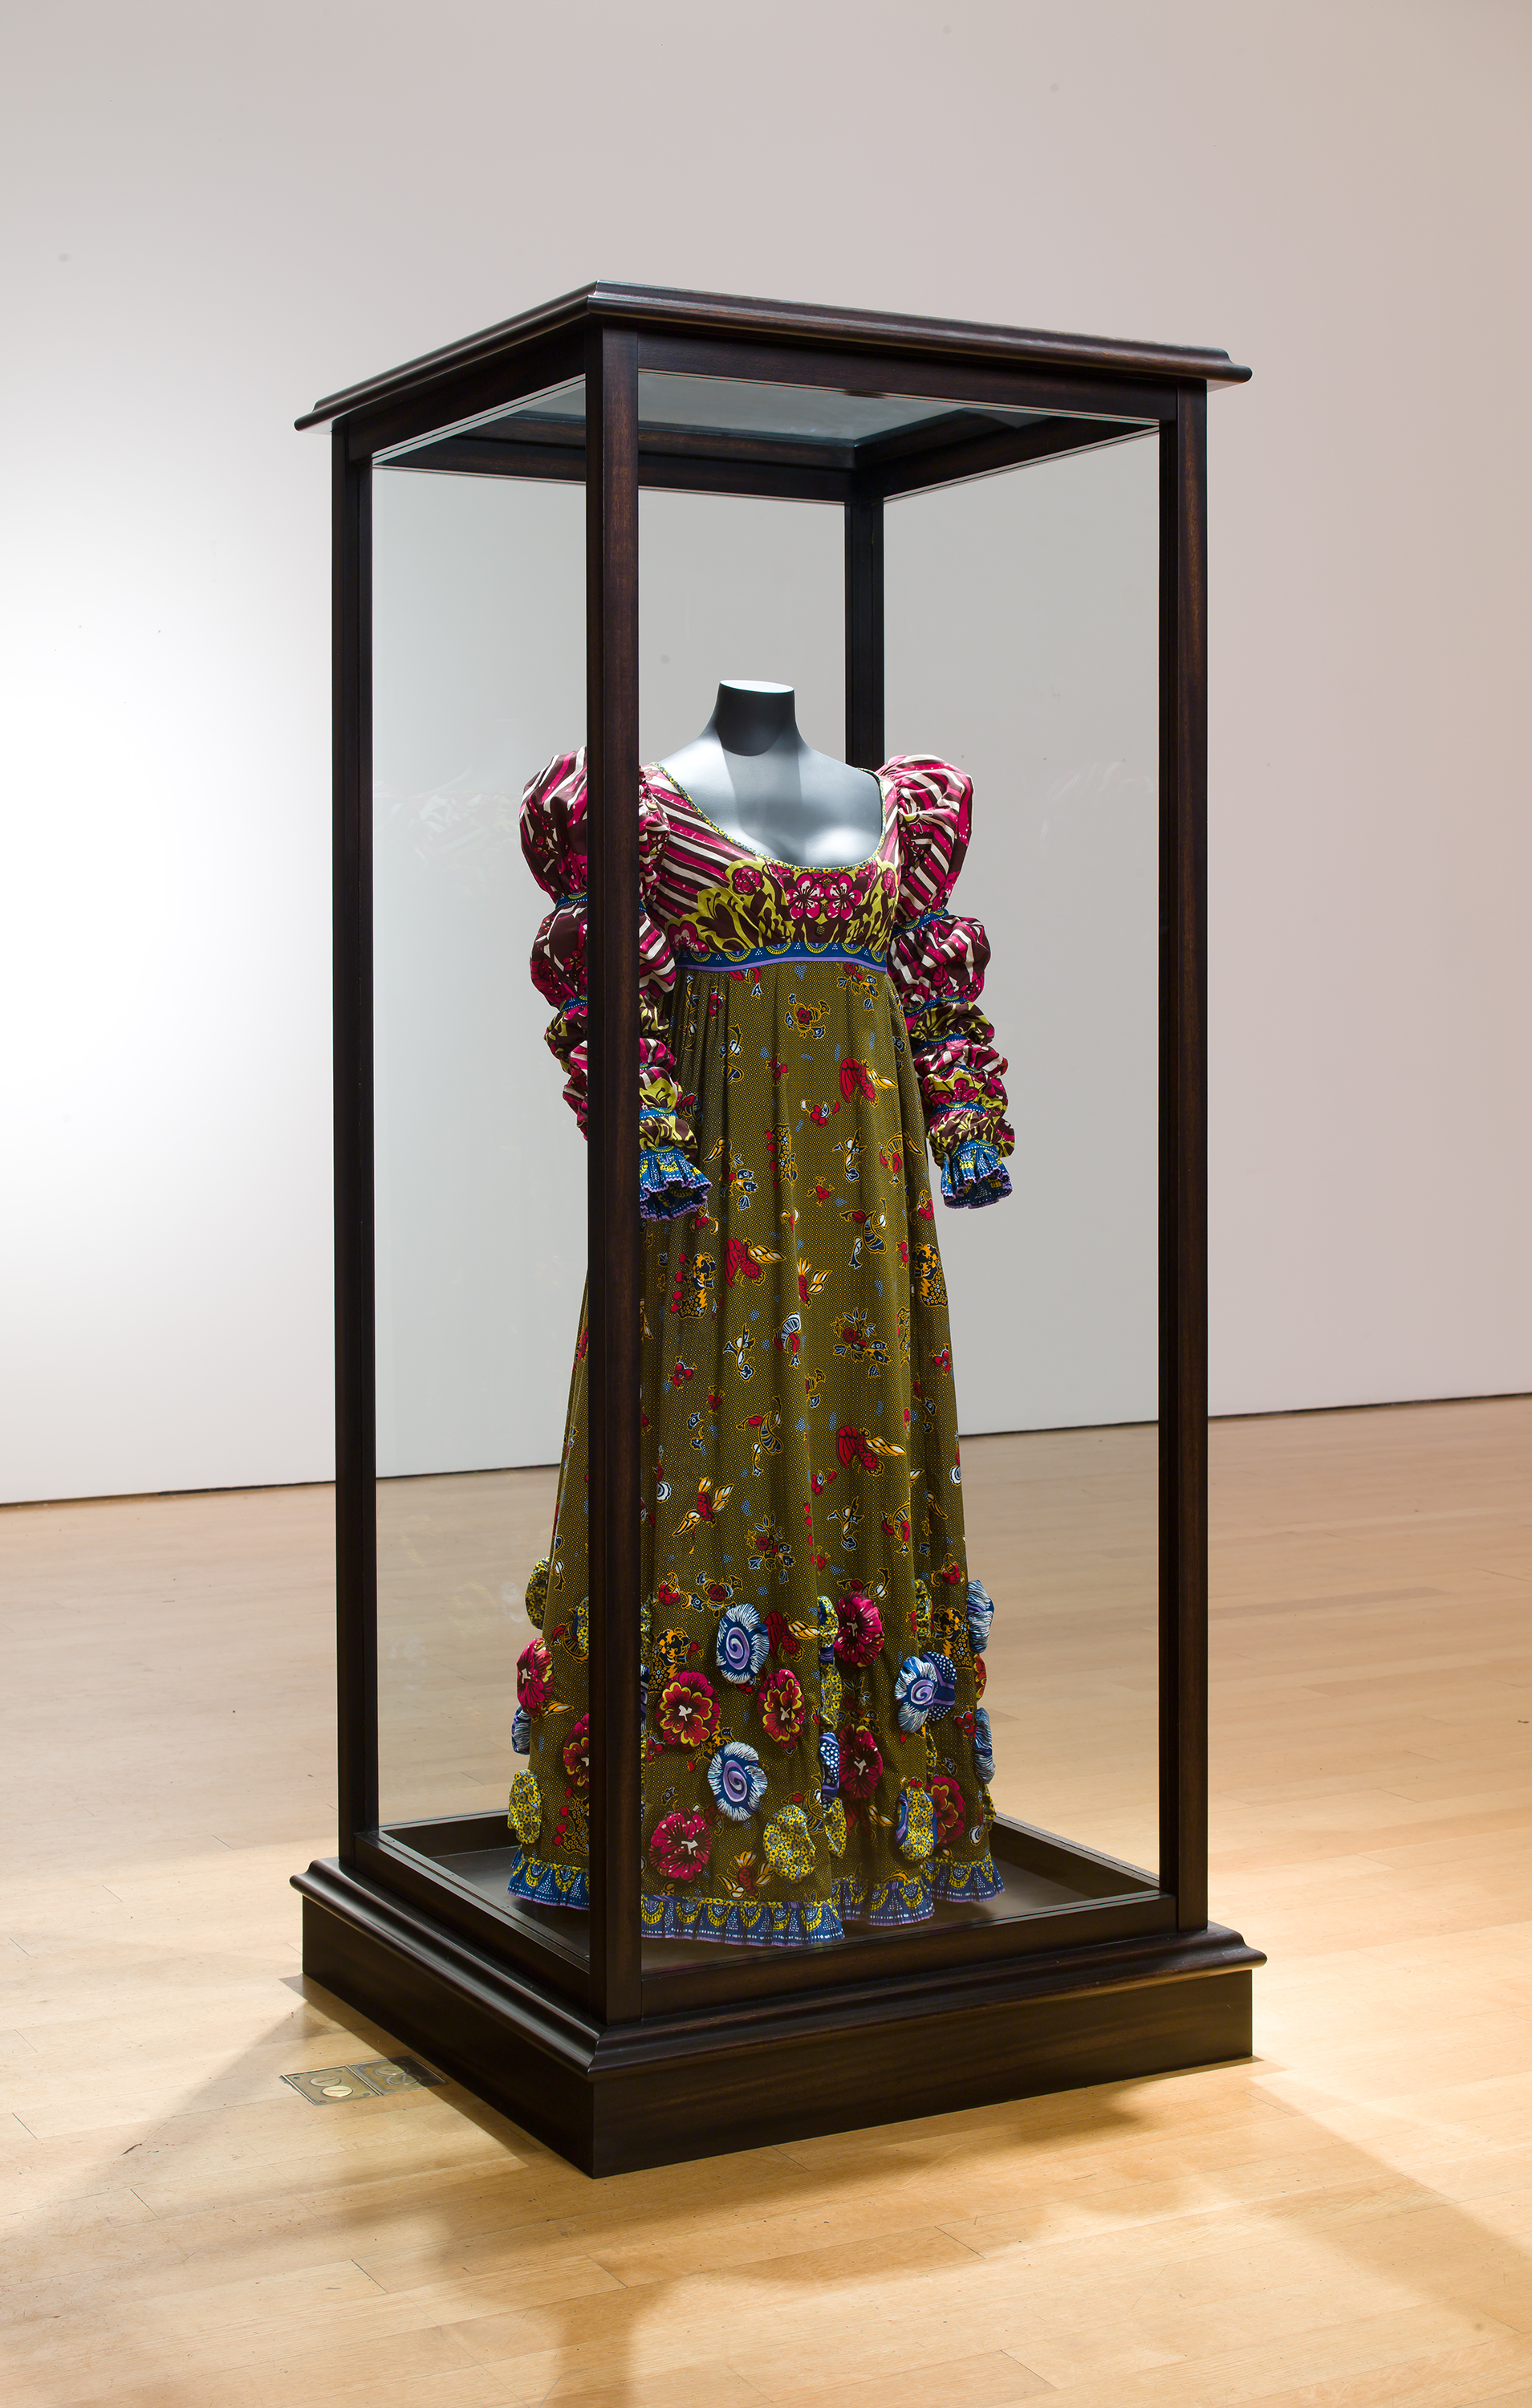 Yinka Shonibare MBE, British, born 1962: Nelson's Jacket. Museum purchase, Fowler McCormick, Class of 1921, Fund (2018-4.1-.2). © Yinka Shonibare MBE. Courtesy James Cohan, New York. Photo: Jason Mandella.